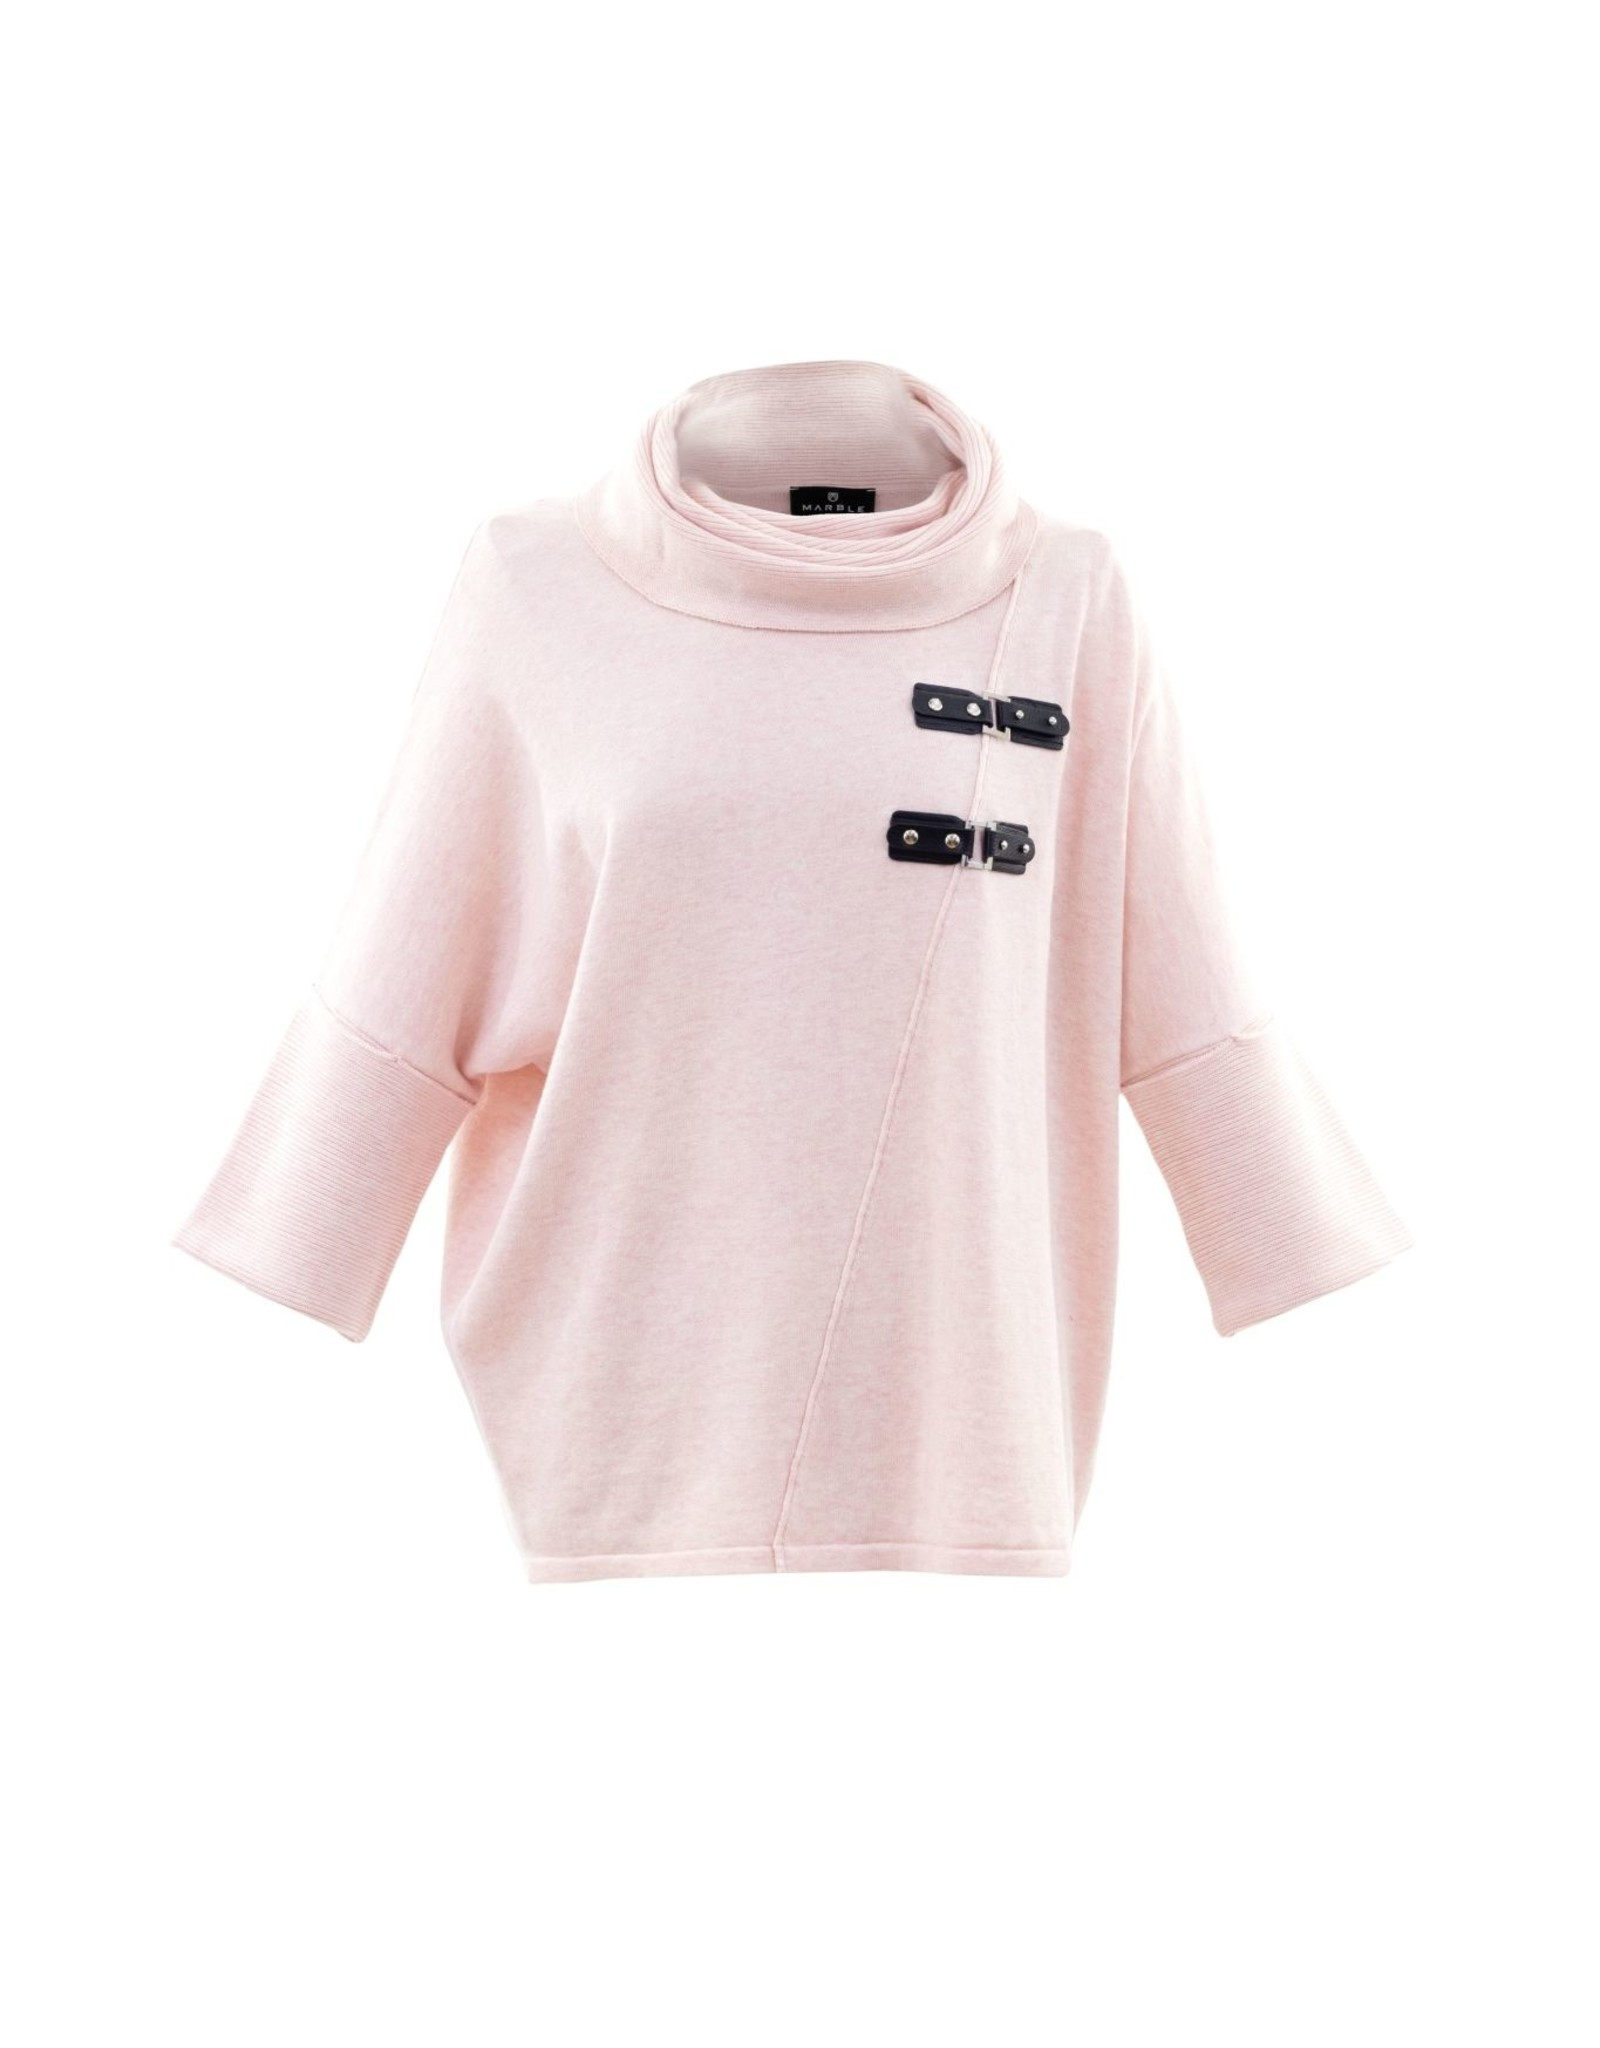 Marble MB-5868 Buckle Sweater